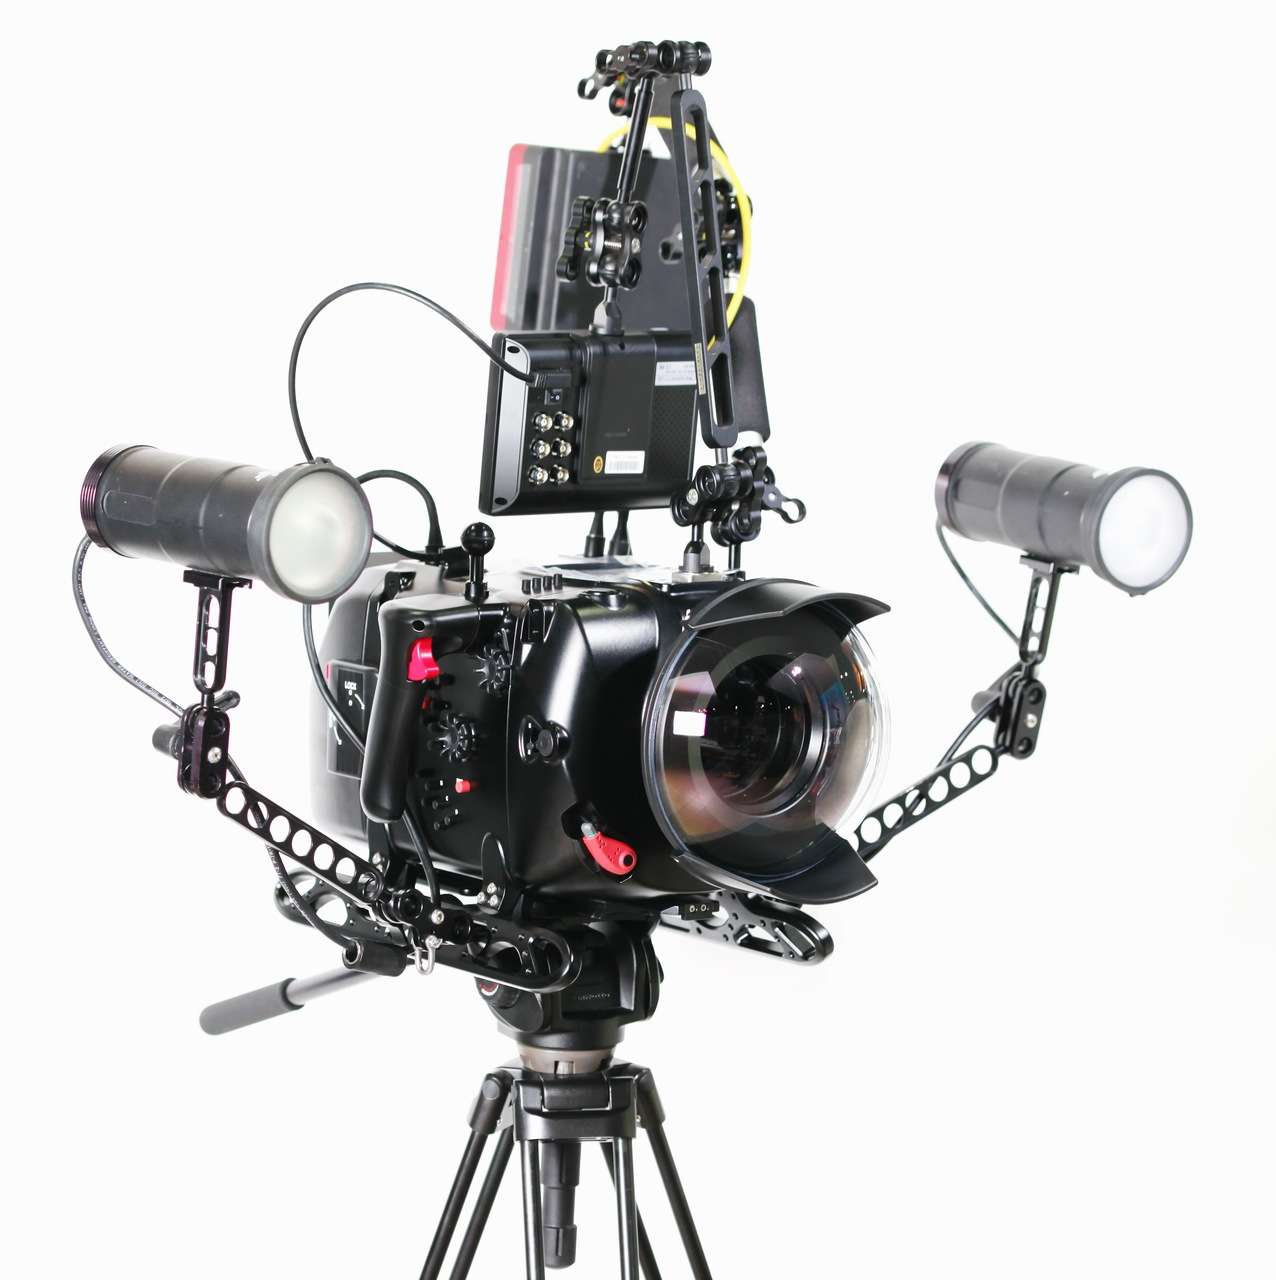 16131 Digital Cinema System for Red Epic-X /Scarlet-X with N200 port mount package inc. N200 250mm optical glass wide angle port, N200 extension rings 30, 40 and 50, and Lens control drive shafts